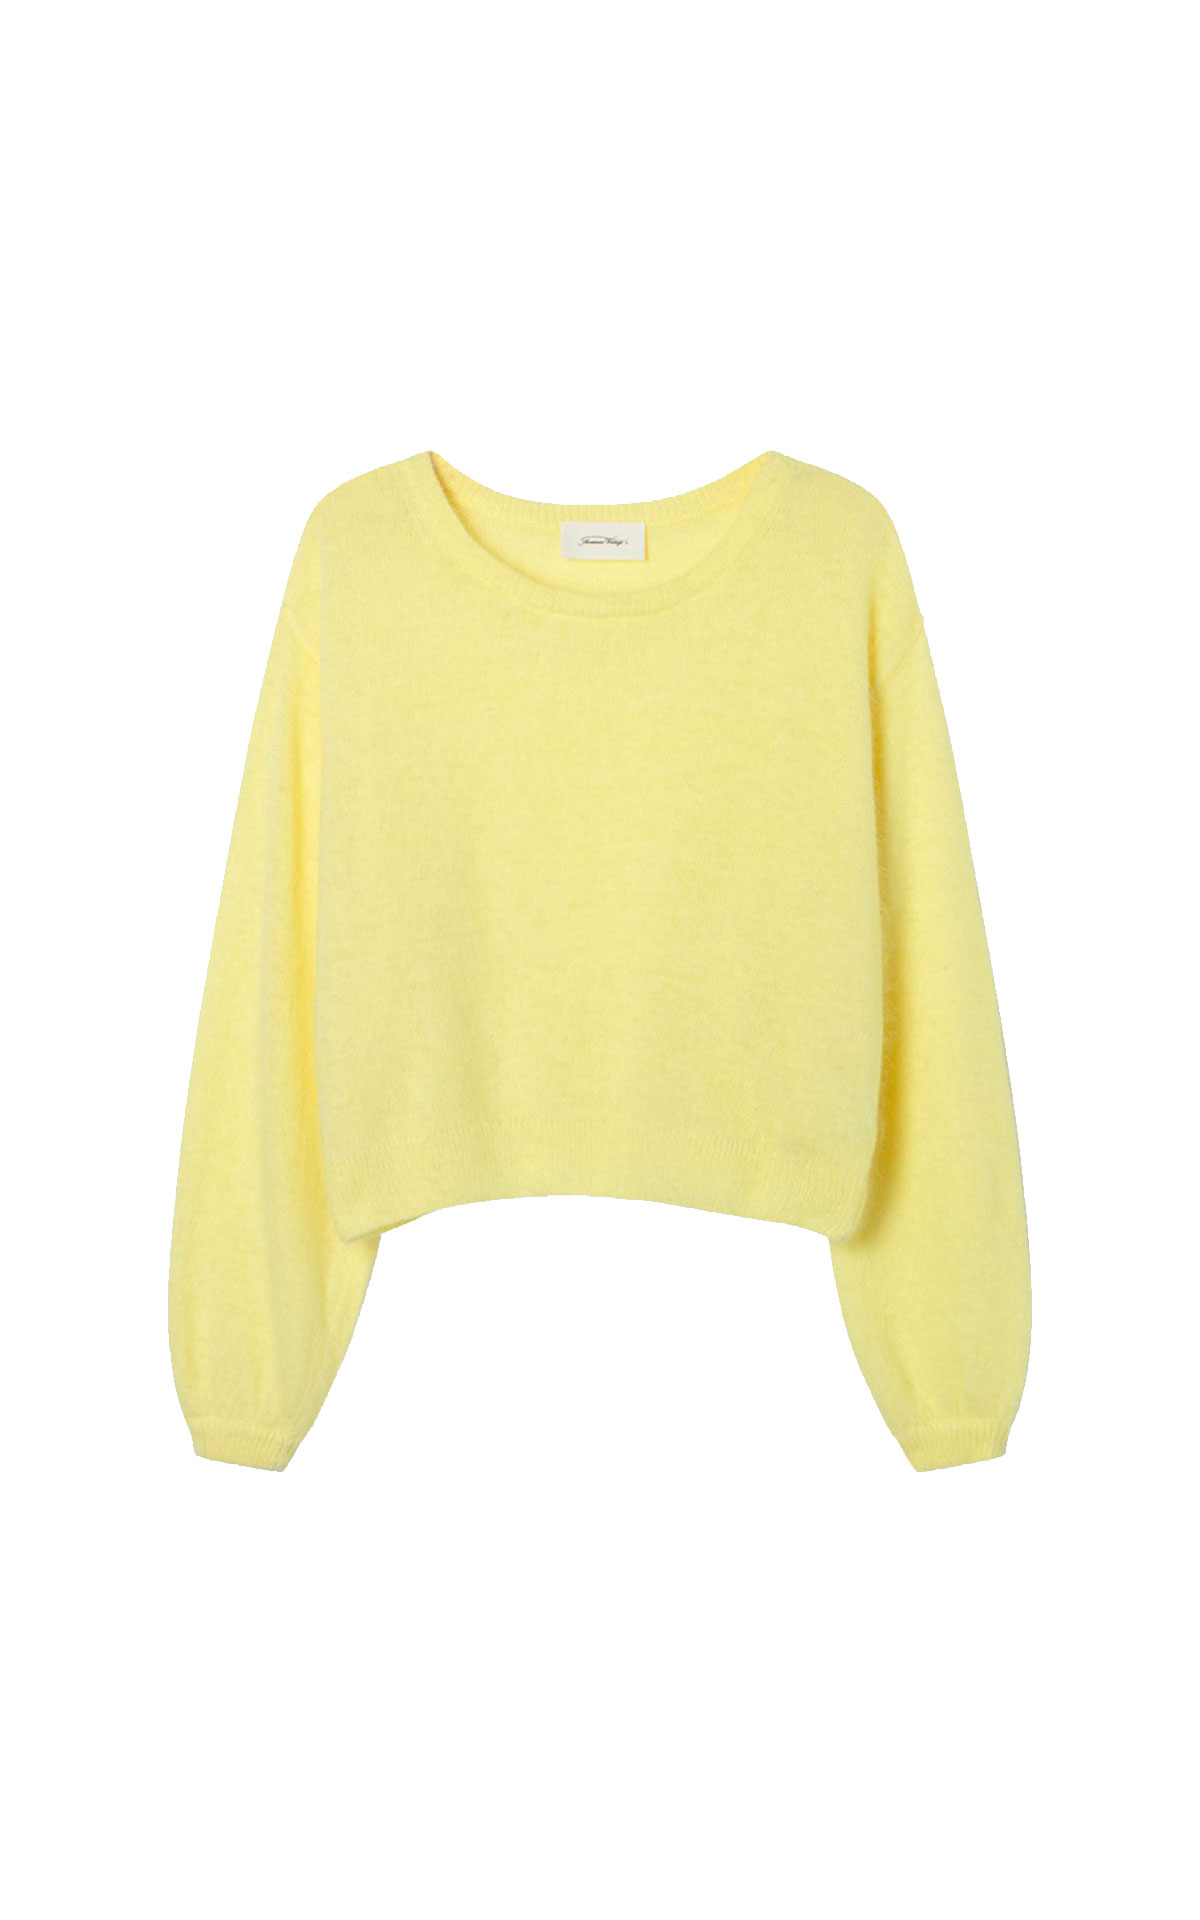 Yellow sweater American Vintage